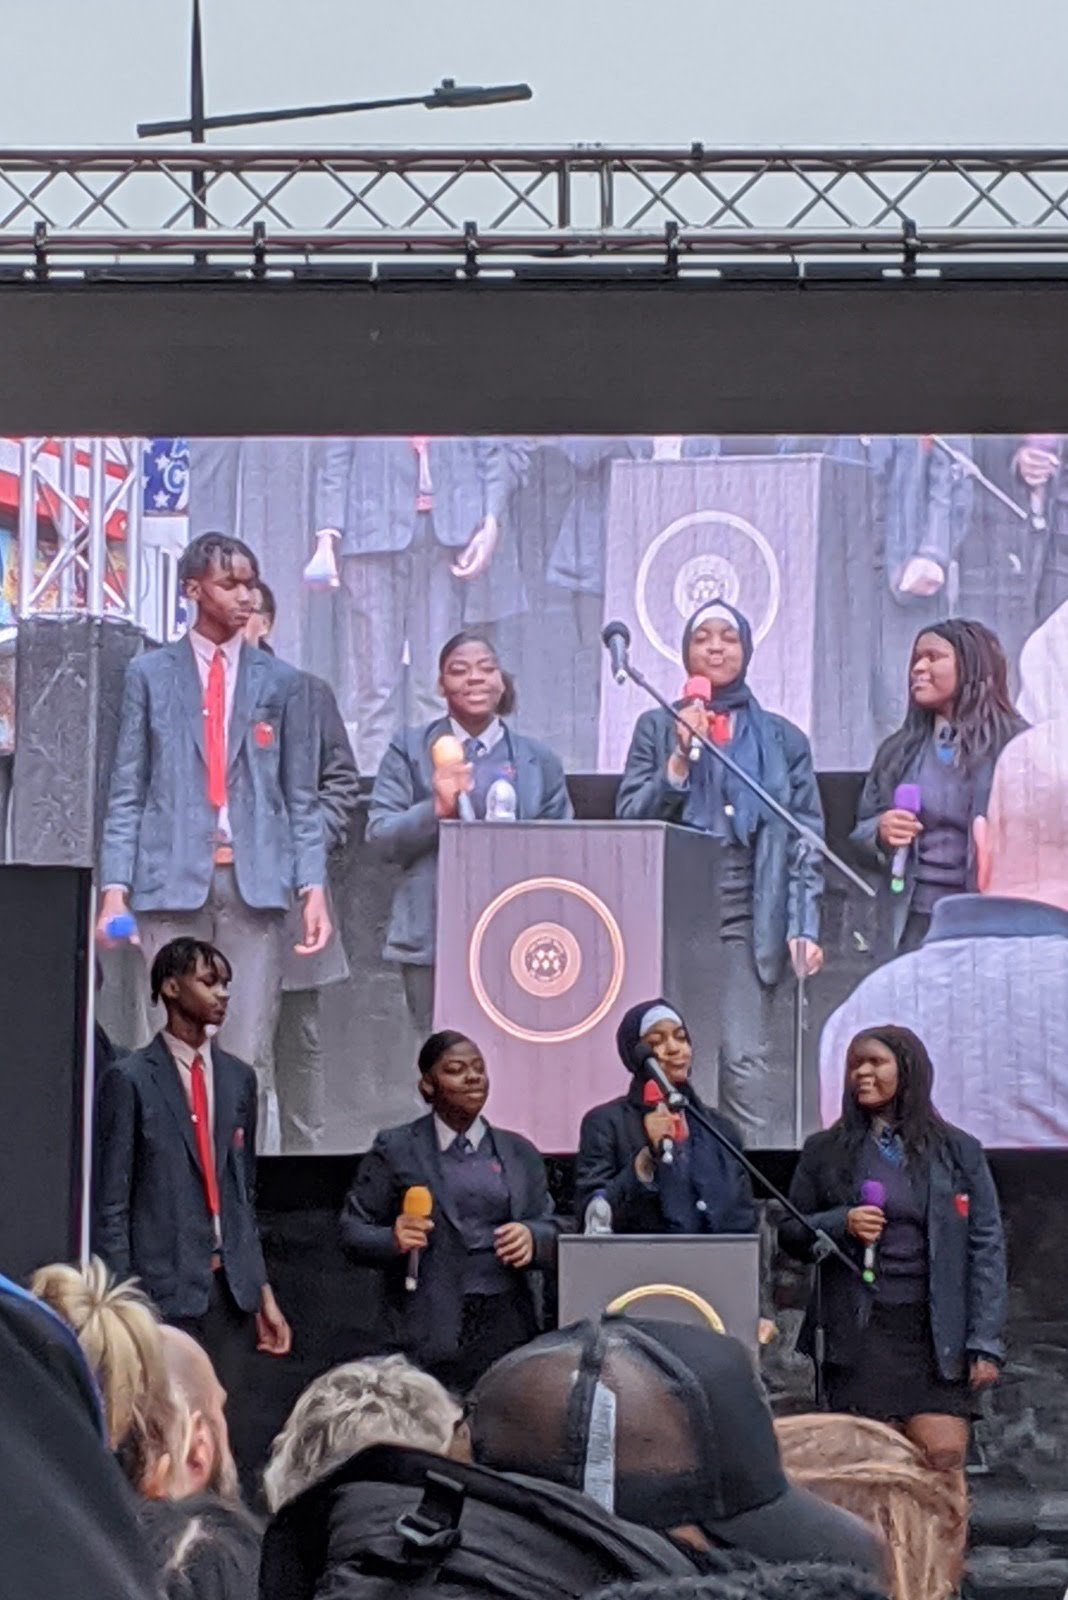 Four pupils from Camden's Haverstock School sing at the event.